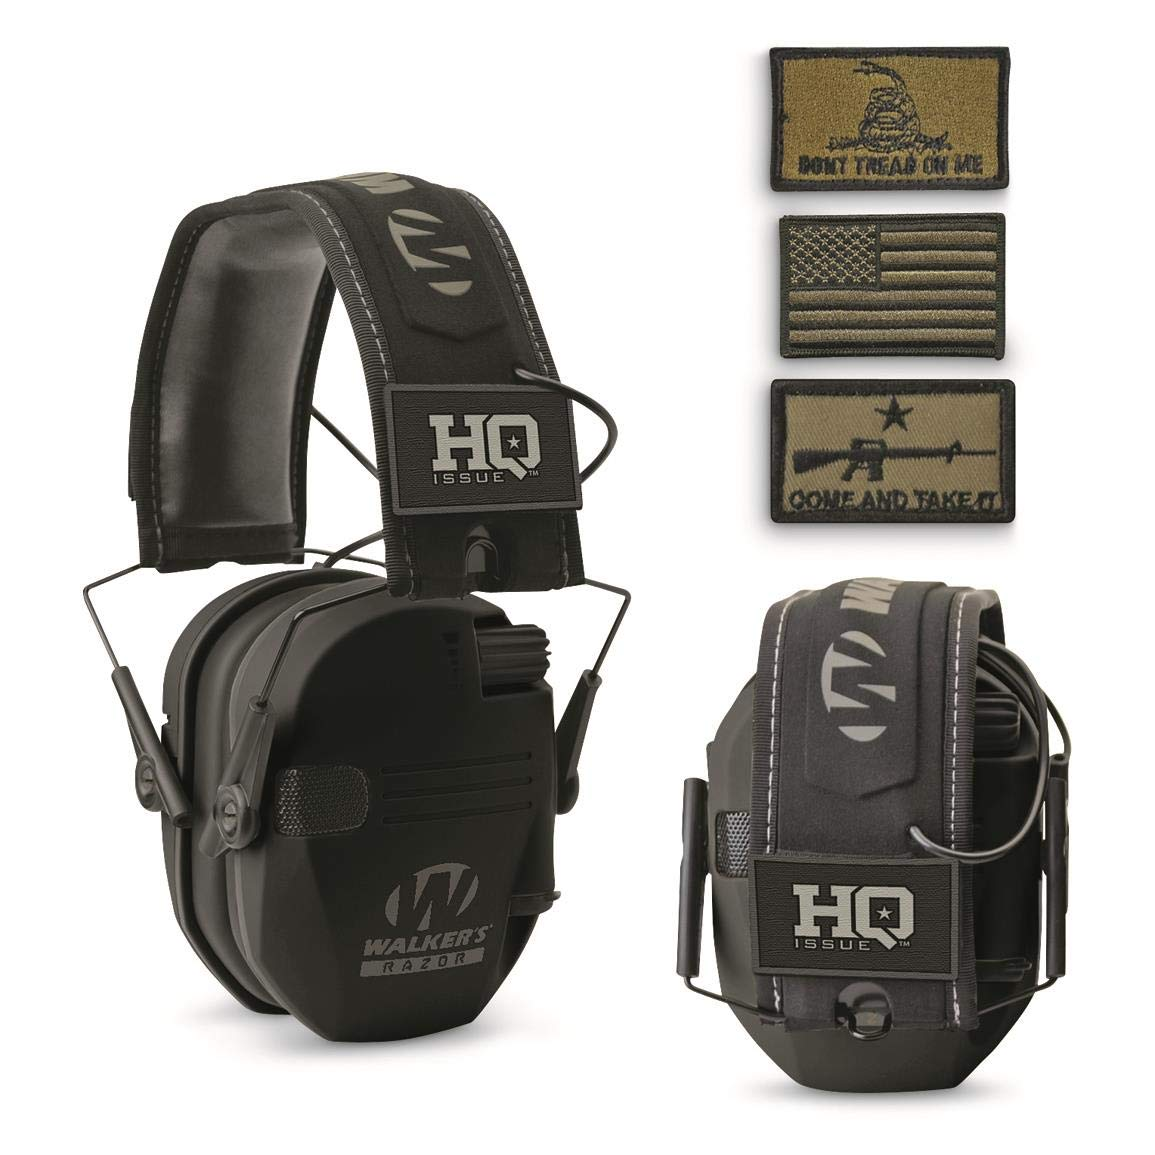 HQ Issue Walker's Patriot Series Electronic Ear Muffs, Black by Walker's Game Ear